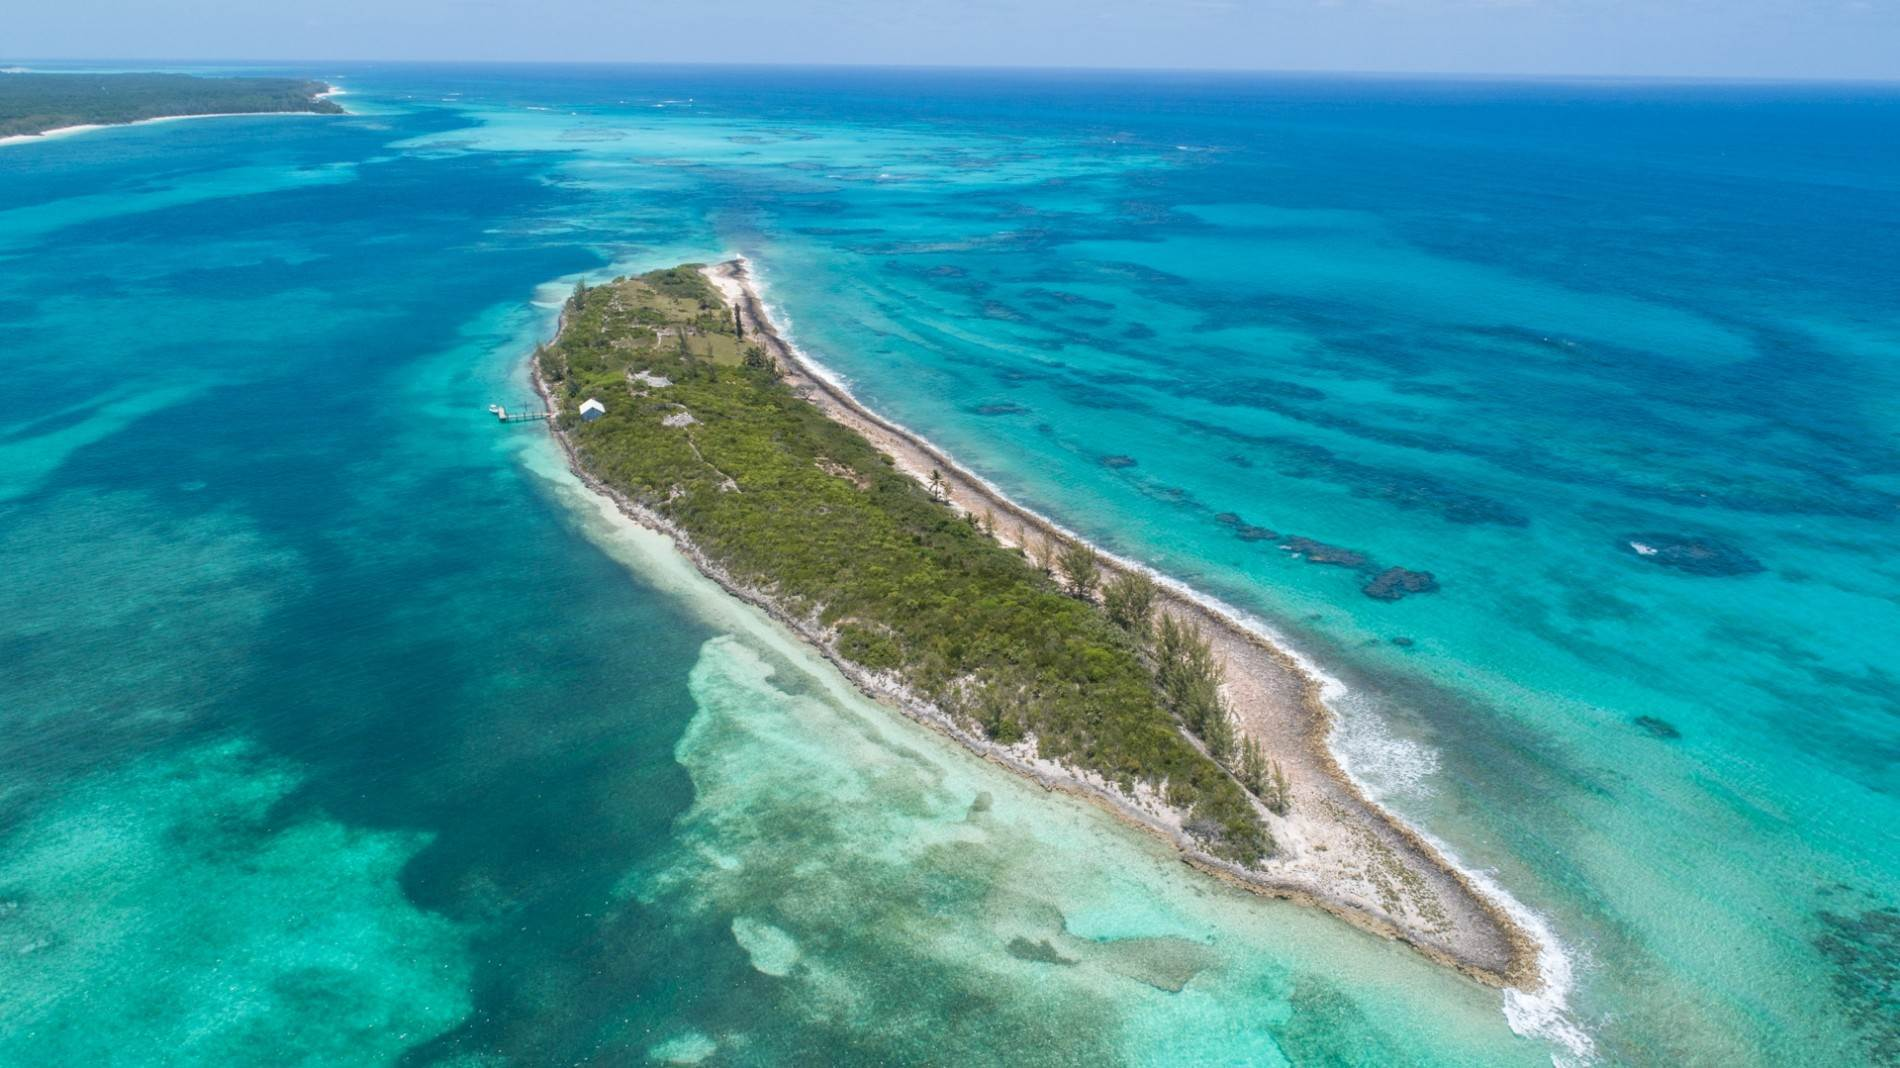 2. Private Islands for Sale at Pierre Island, A Perfect Private Retreat Island Near Harbour Island - MLS 40806 Harbour Island, Eleuthera, Bahamas